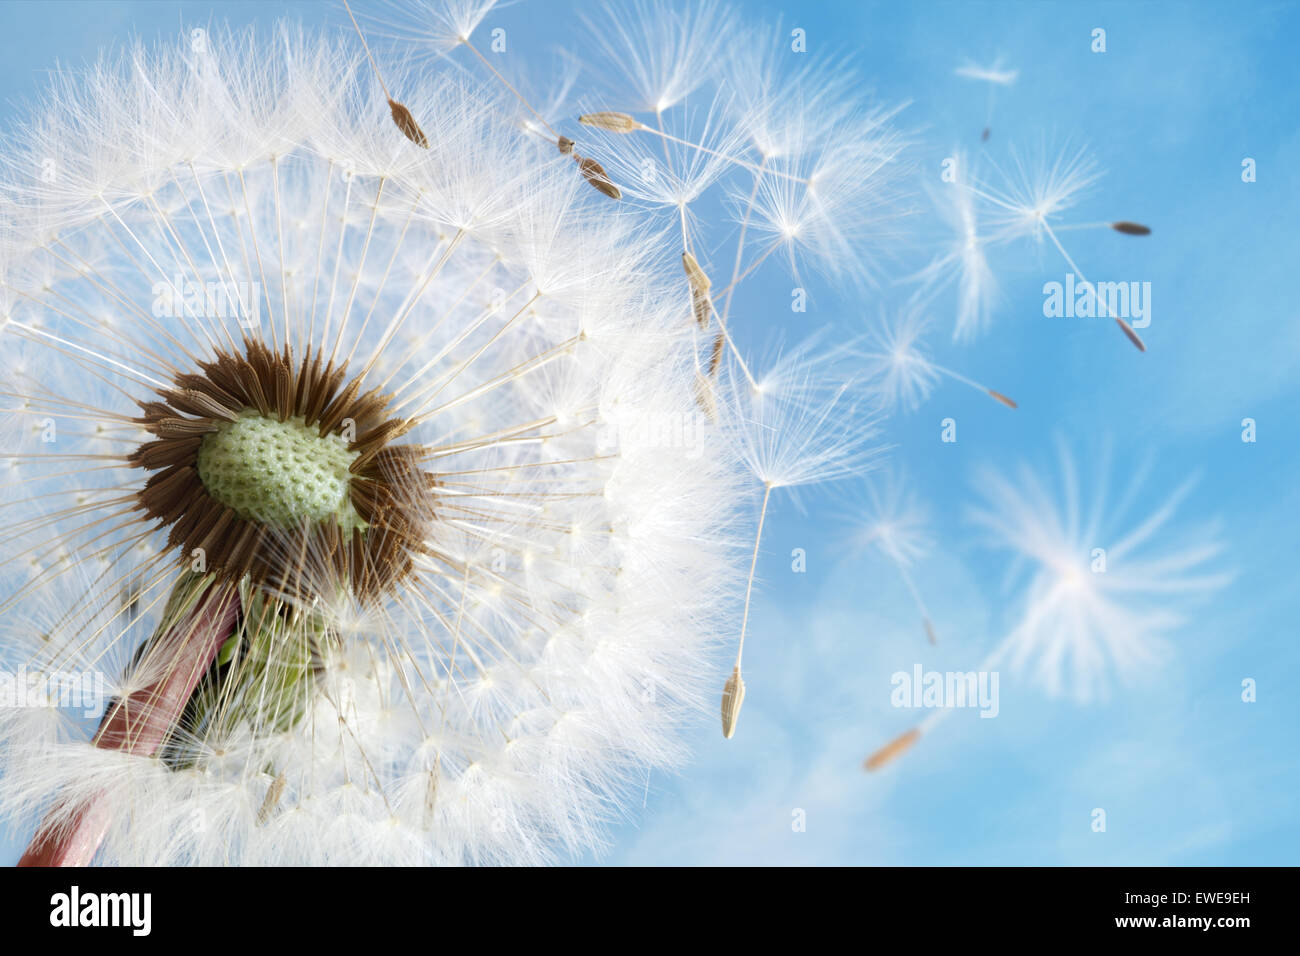 Dandelion seeds in the morning sunlight blowing away in the wind across a clear blue sky - Stock Image